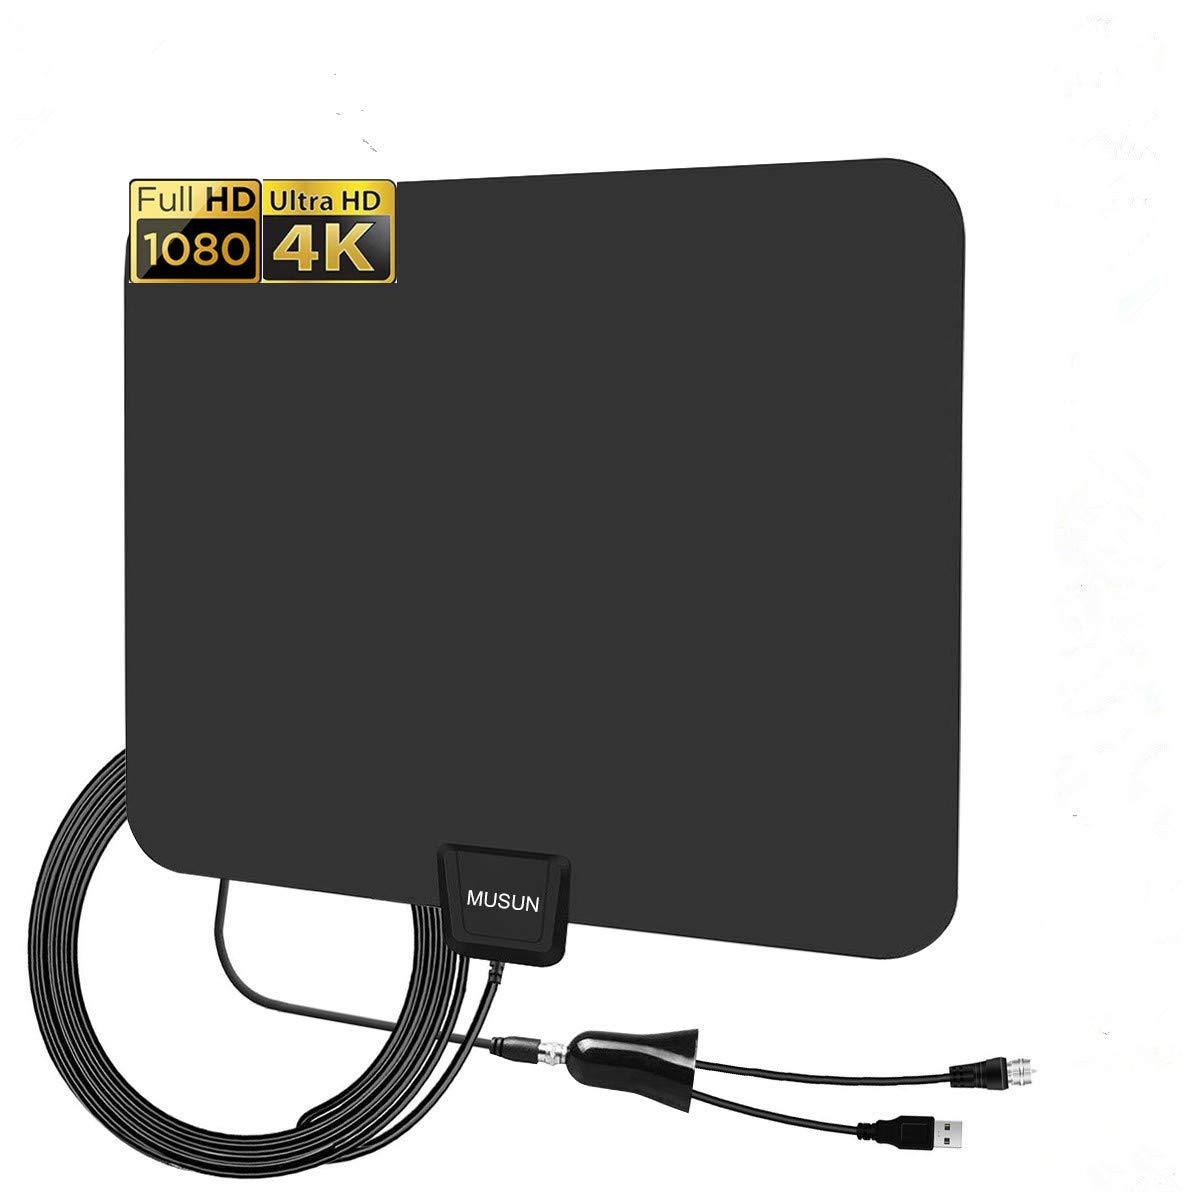 HDTV Antenna - Digital HD TV Antenna 85 Miles Range Compatible 4K 1080P Free TV Channels Powerful Detachable Amplifier Signal Booster,Longer Coax Cable